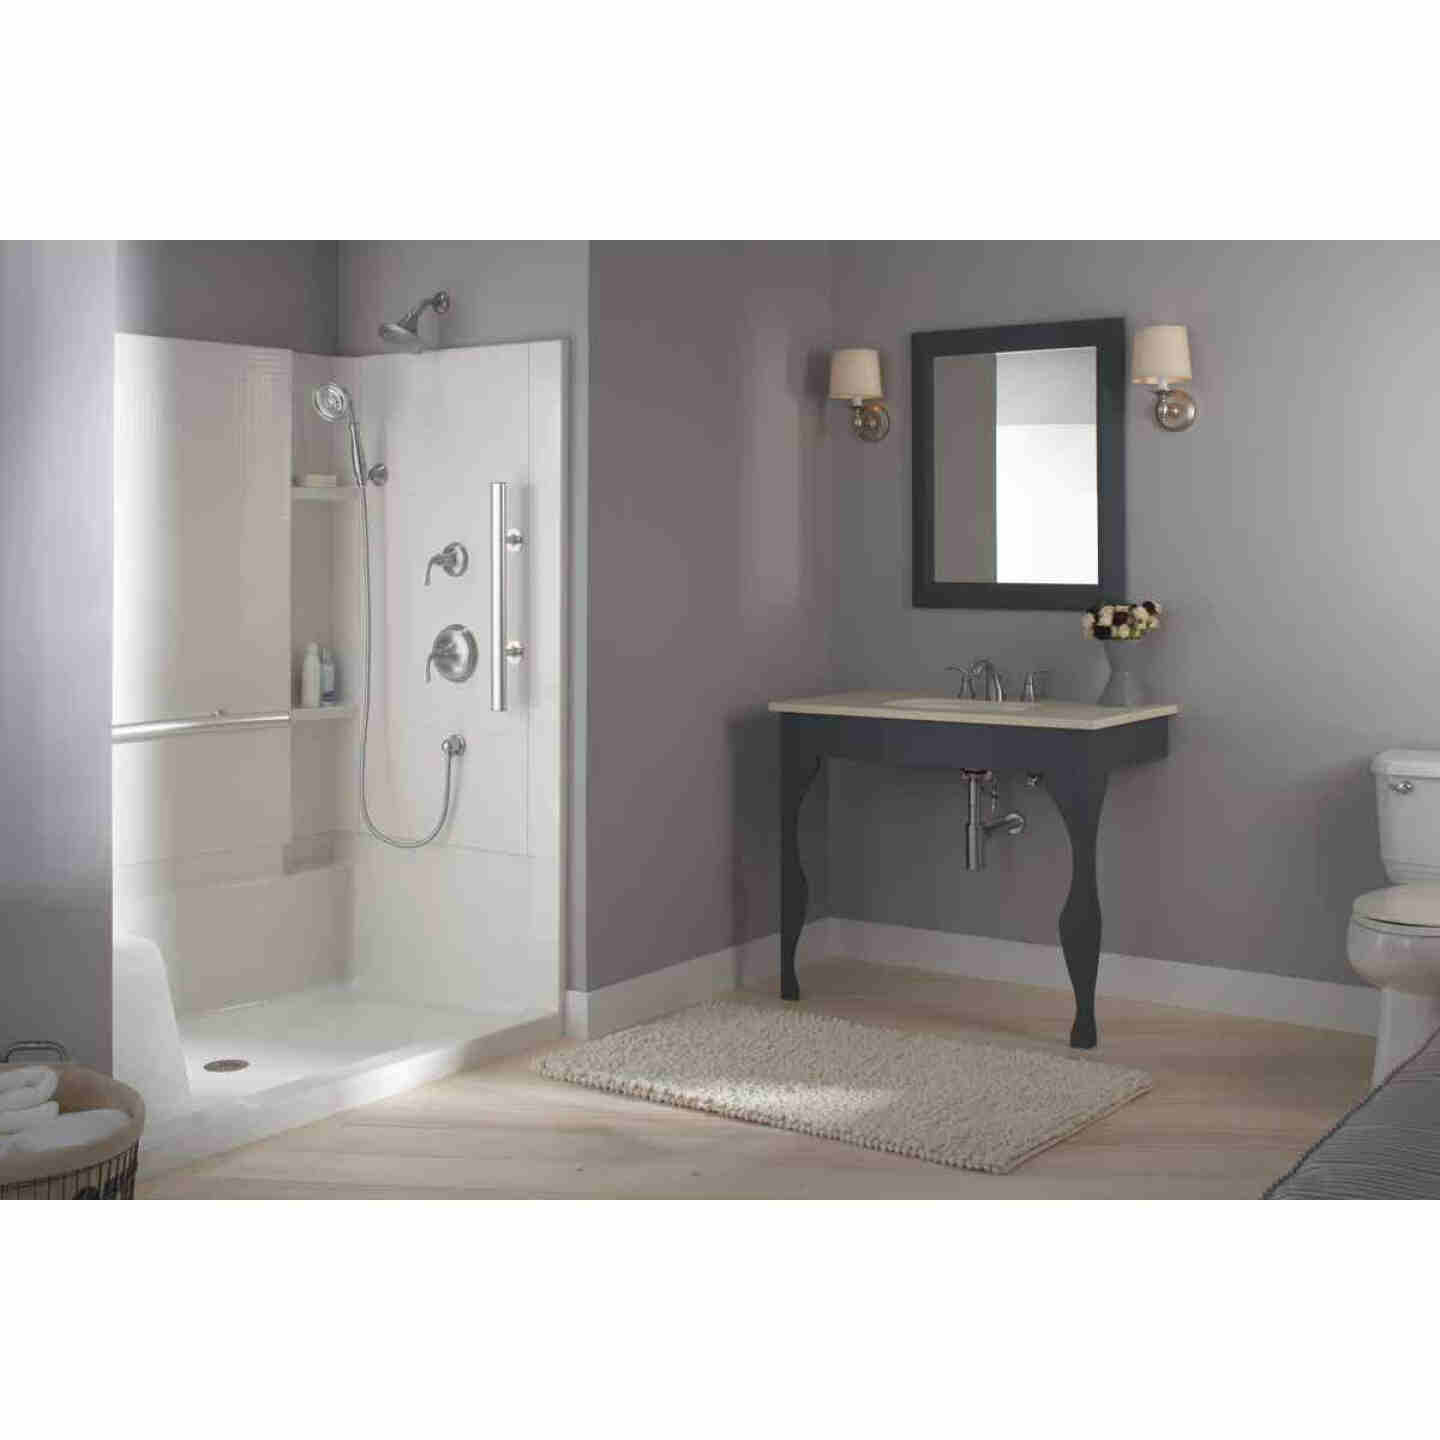 Sterling Accord 48 In. W x 36 In. D Center Drain Seated Shower Floor & Base in White Image 4